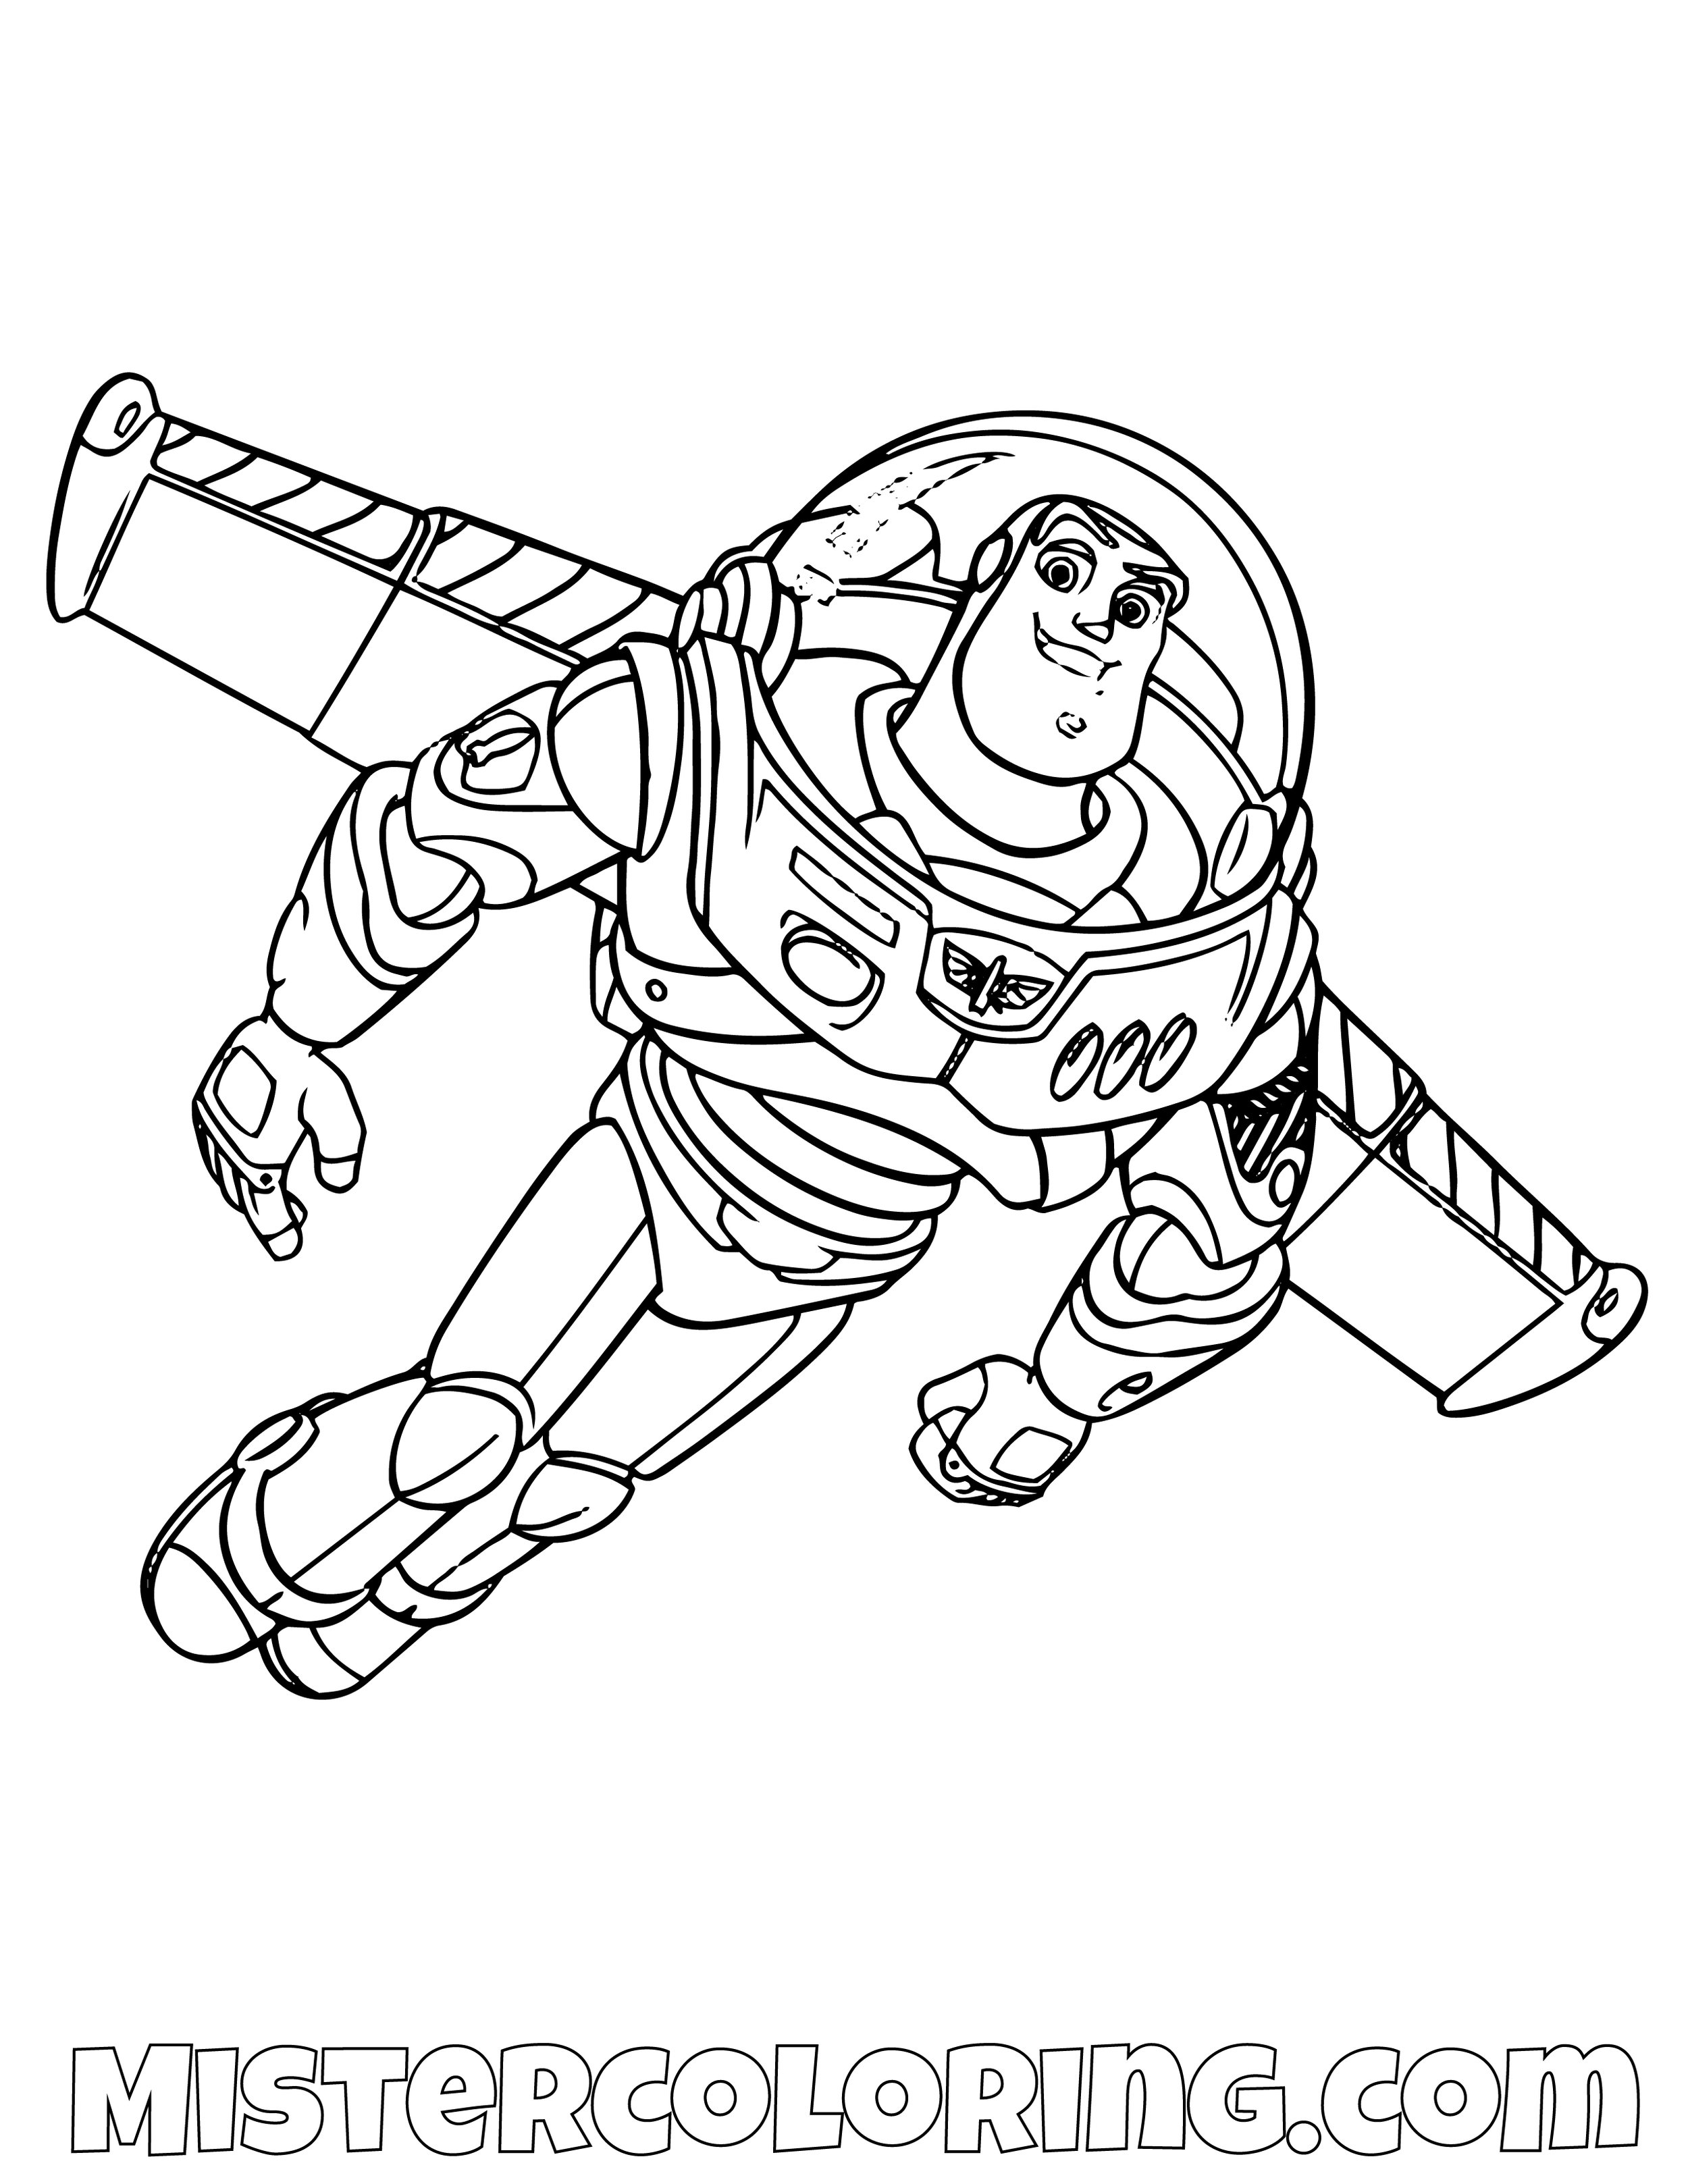 Buzz Lightyear Flying Toy Story Coloring Page